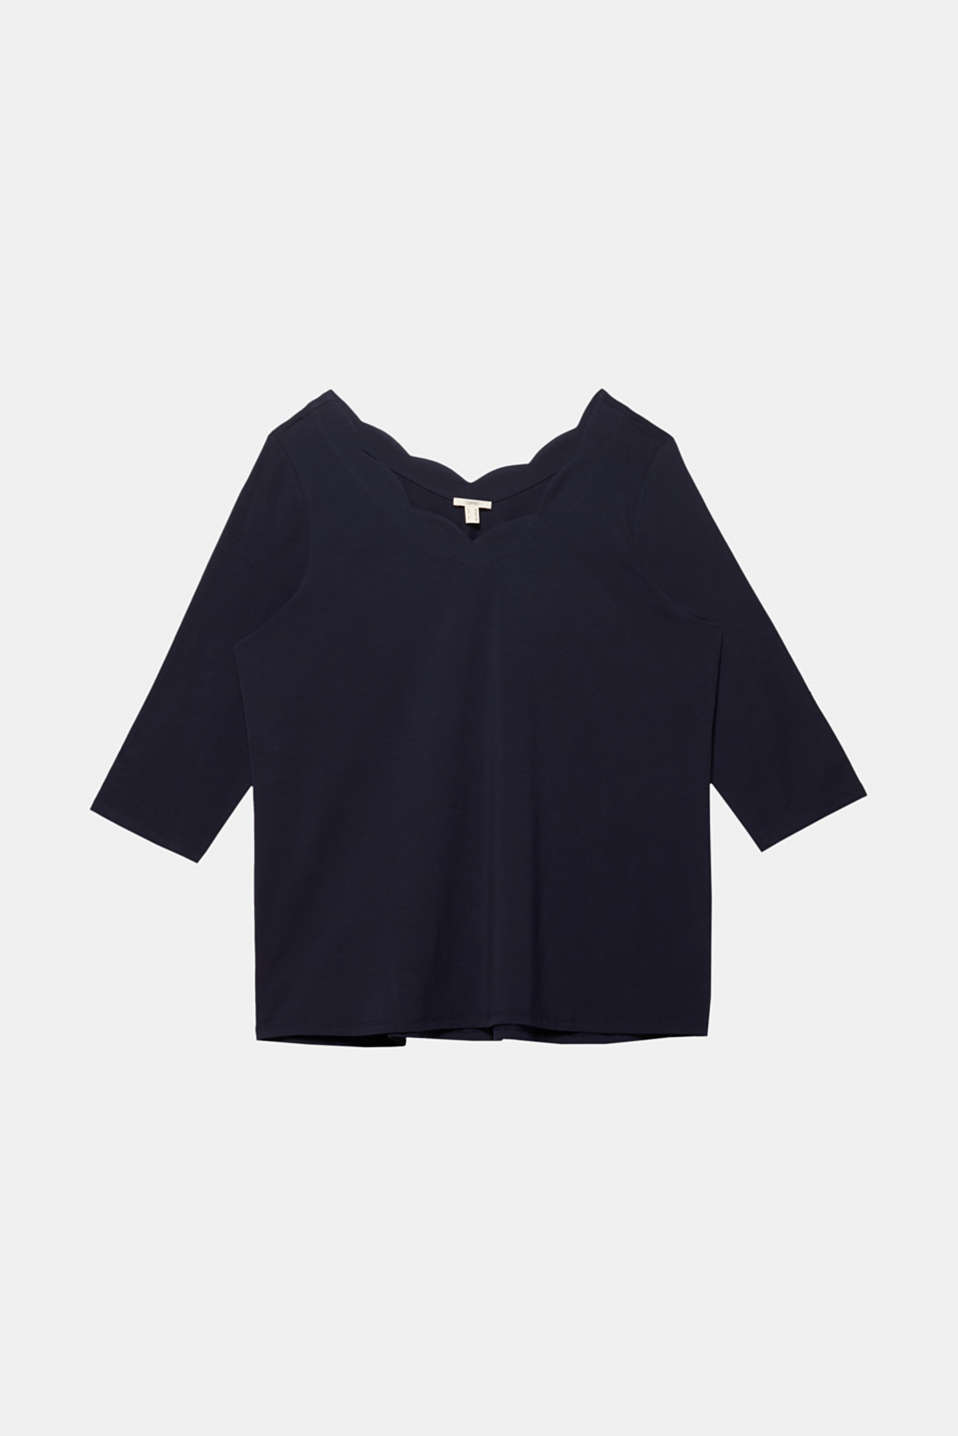 CURVY top with wavy details, NAVY, detail image number 5